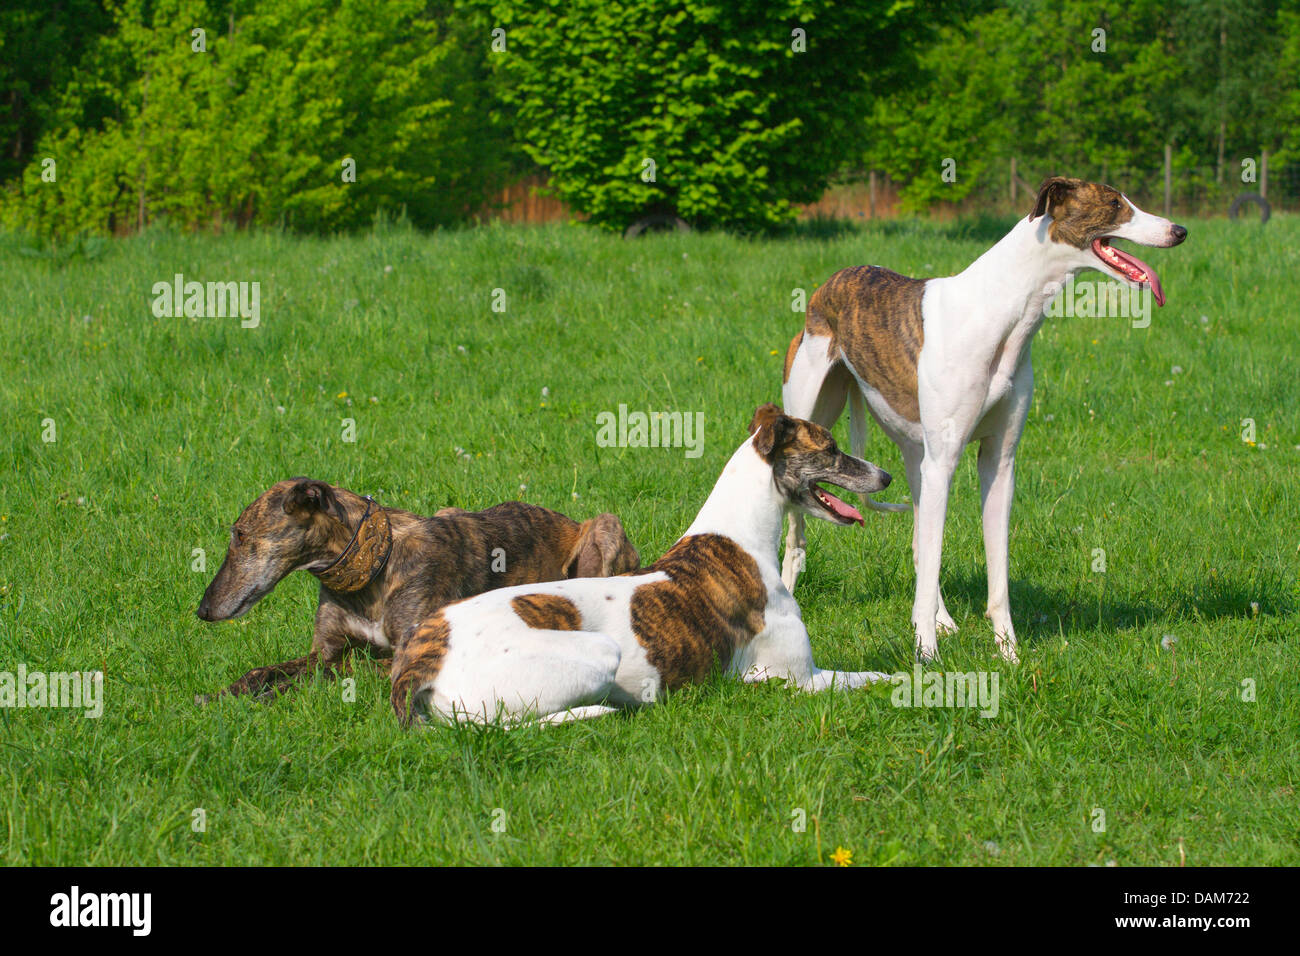 Spanish Greyhound (Canis lupus f. familiaris), three Greyhounds of different age, fur structure and colouration Stock Photo